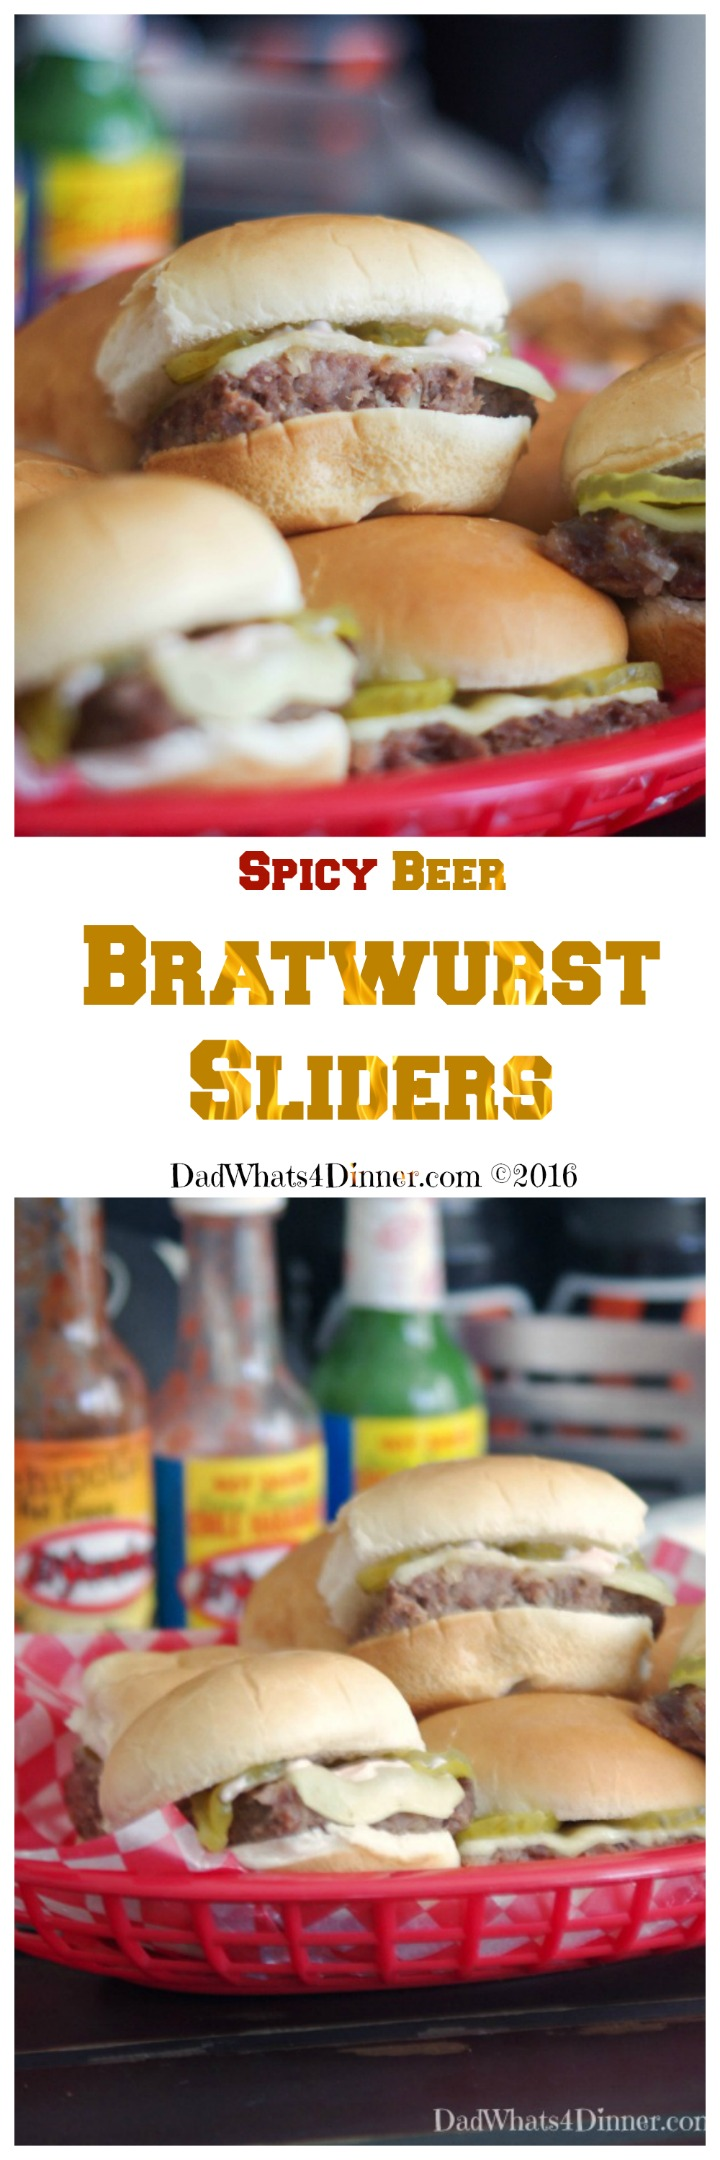 Spicy Beer Bratwurst Sliders combines three classic tailgating foods: Beer, Bratwurst, and Hamburgers in a little slider that packs a nice spicy kick. #gameday #Sliders #Tailgate #Appetizers #Football